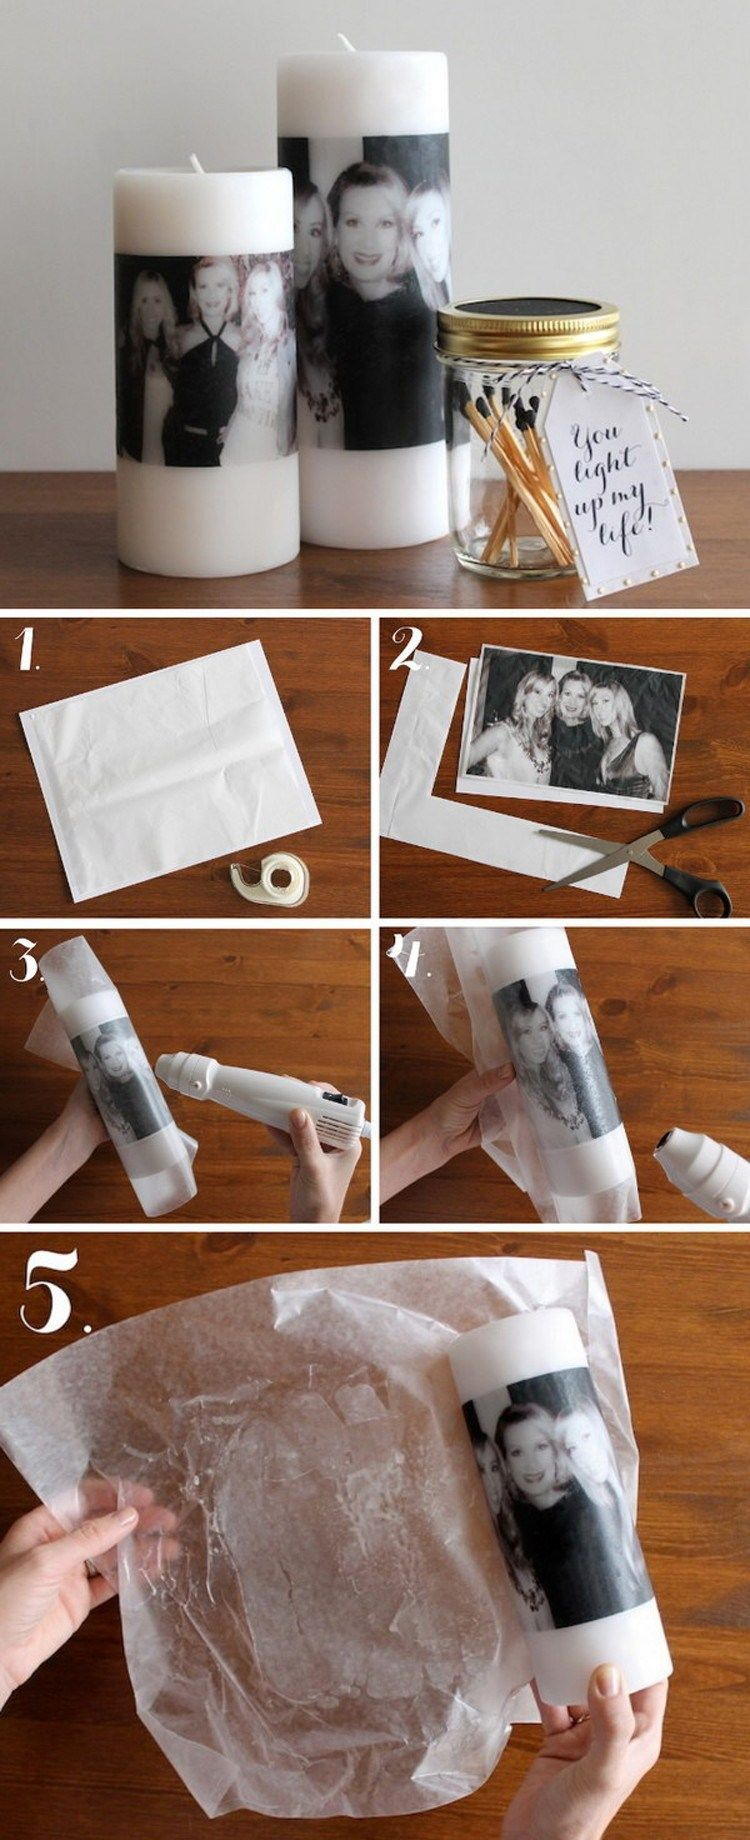 Homemade Gift Ideas That Everyone Will Love This Christmas Especially Your Bank Account Easy Diy Presents Tha Photo Gifts Diy Diy Candle Decor Easy Diy Gifts